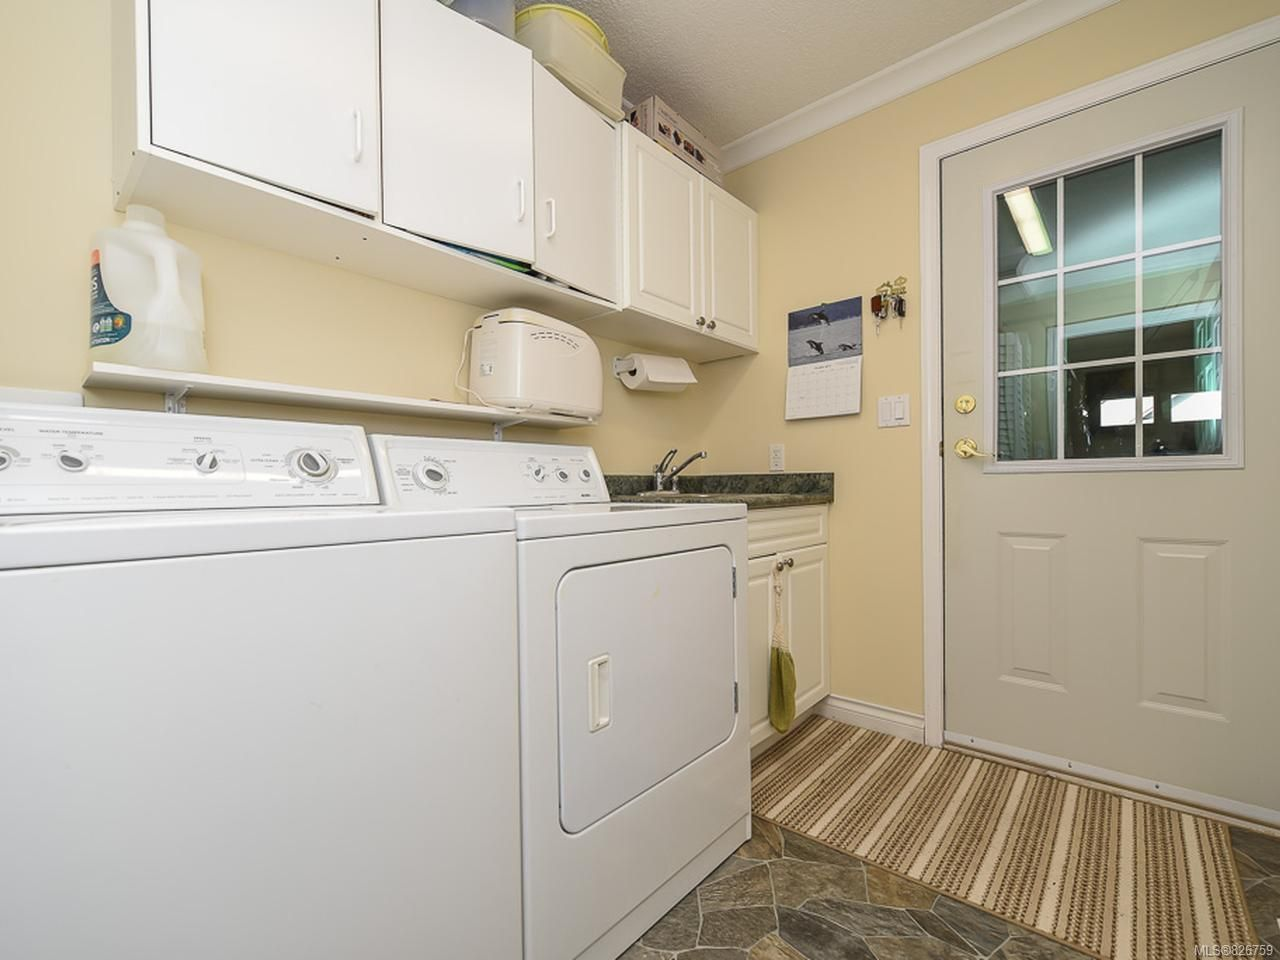 Photo 21: Photos: 2165 Stirling Cres in COURTENAY: CV Courtenay East House for sale (Comox Valley)  : MLS®# 826759